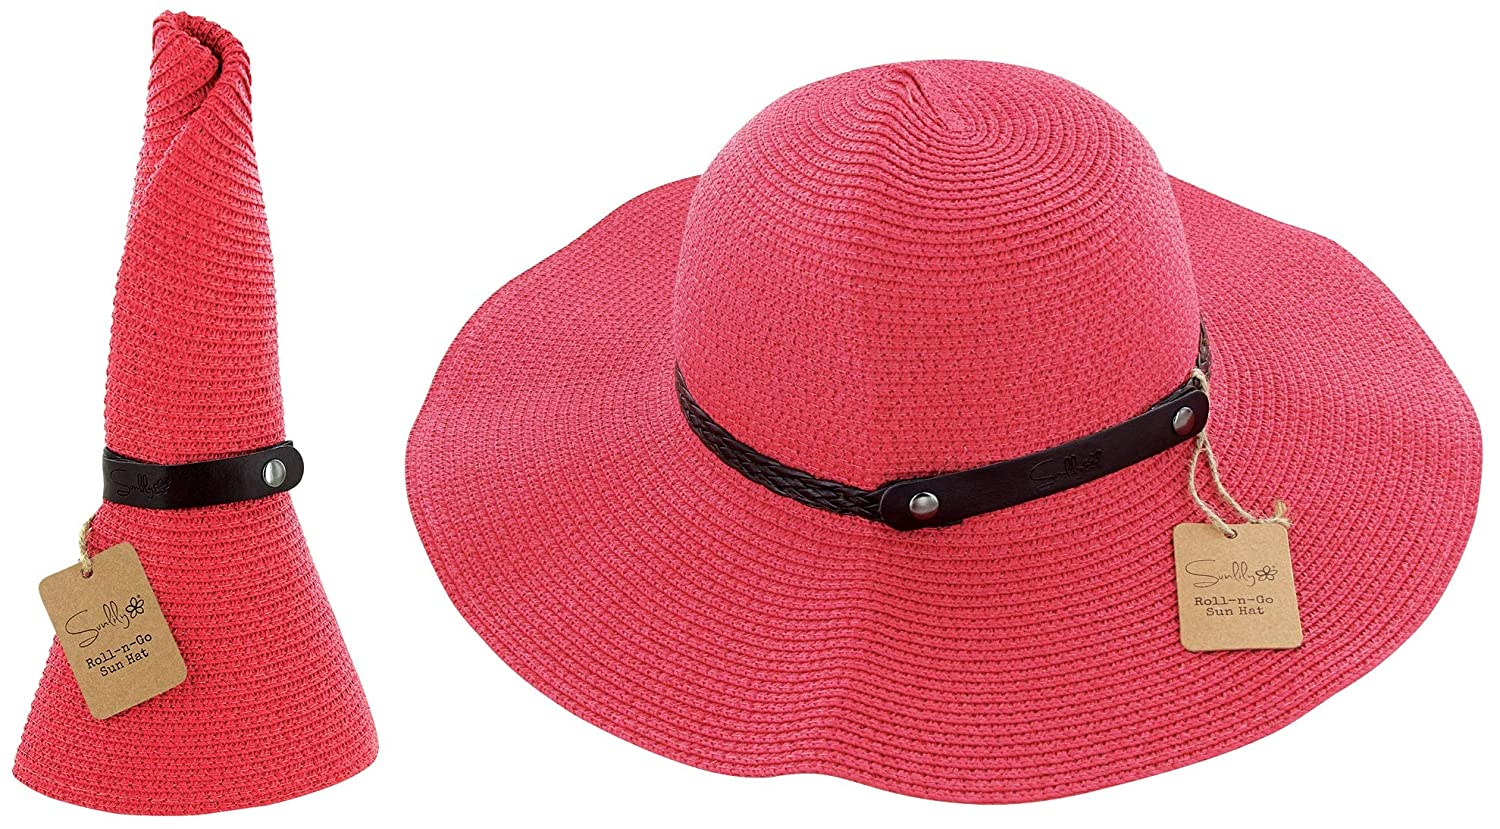 3a015617a4475 Sunlily Roll-n-Go Travel Sun Hat (Coral) at Amazon Women s Clothing store